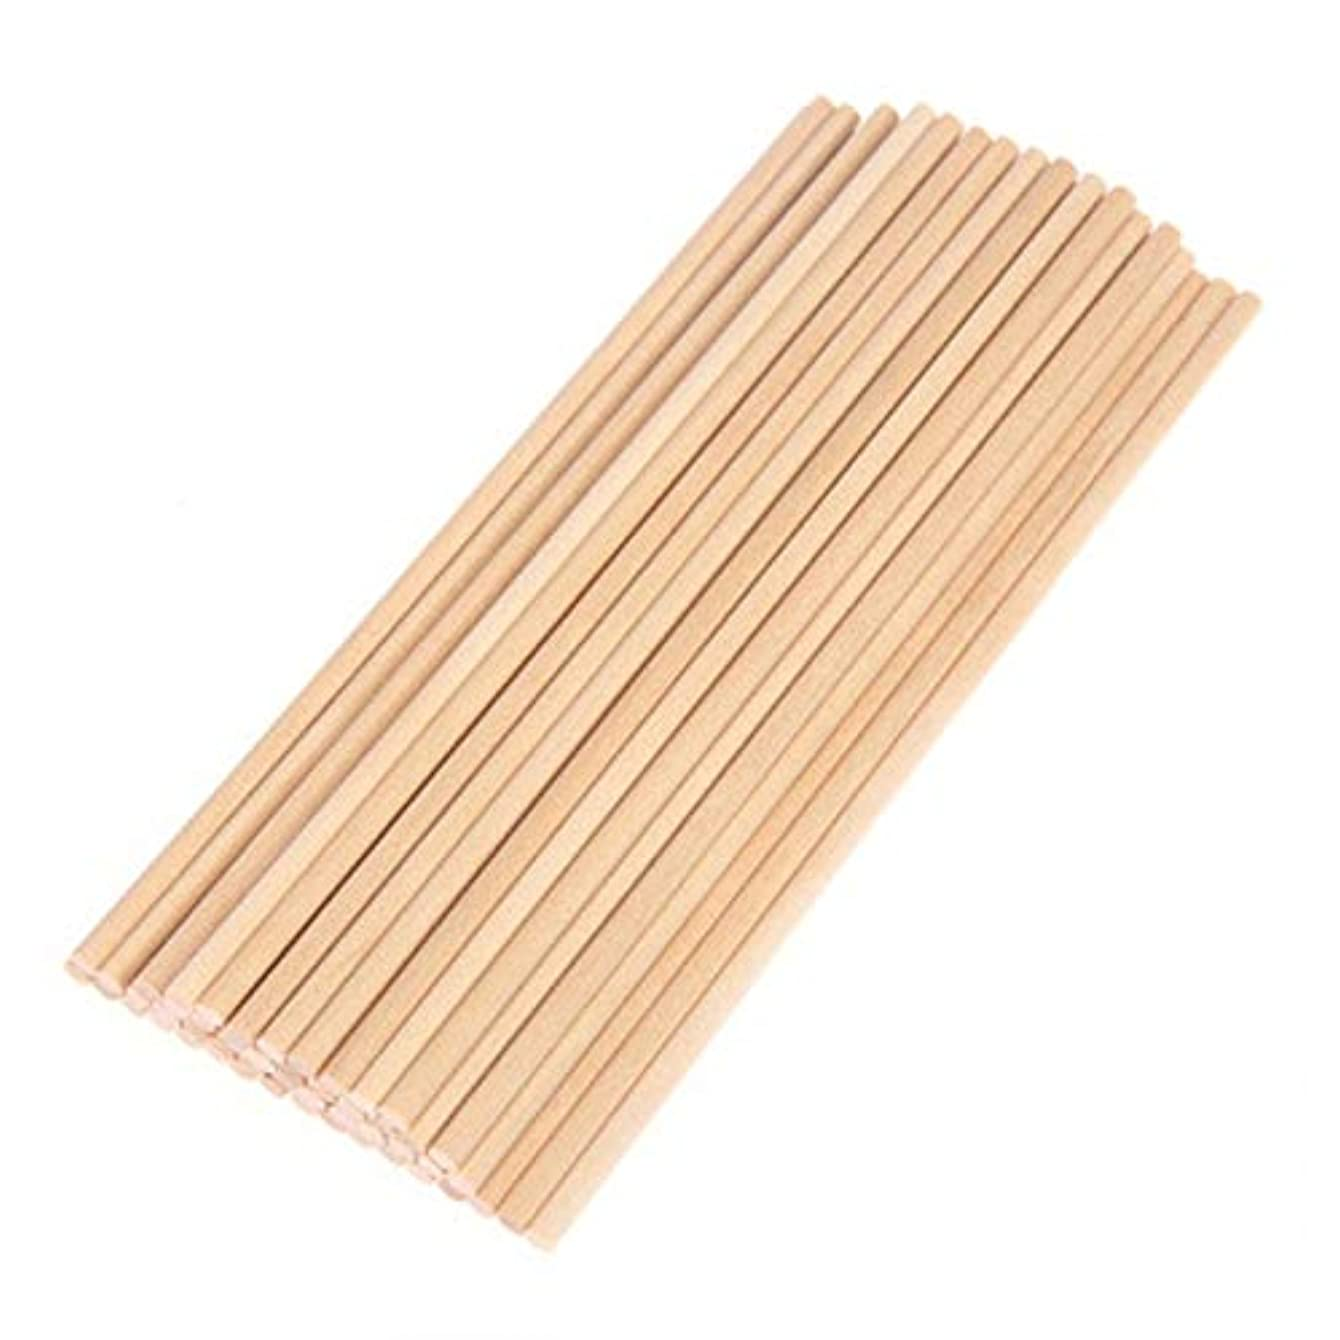 Wood Diy Crafts - 50pcs 10 15 20 0.5cm Round Natural Wooden Lollipop Lolly Sticks Cake Dowel Craft - Wood Crafts Wood Crafts Wooden Craft Stick Dowel Round Dress Decor Accessory Plastic Orange